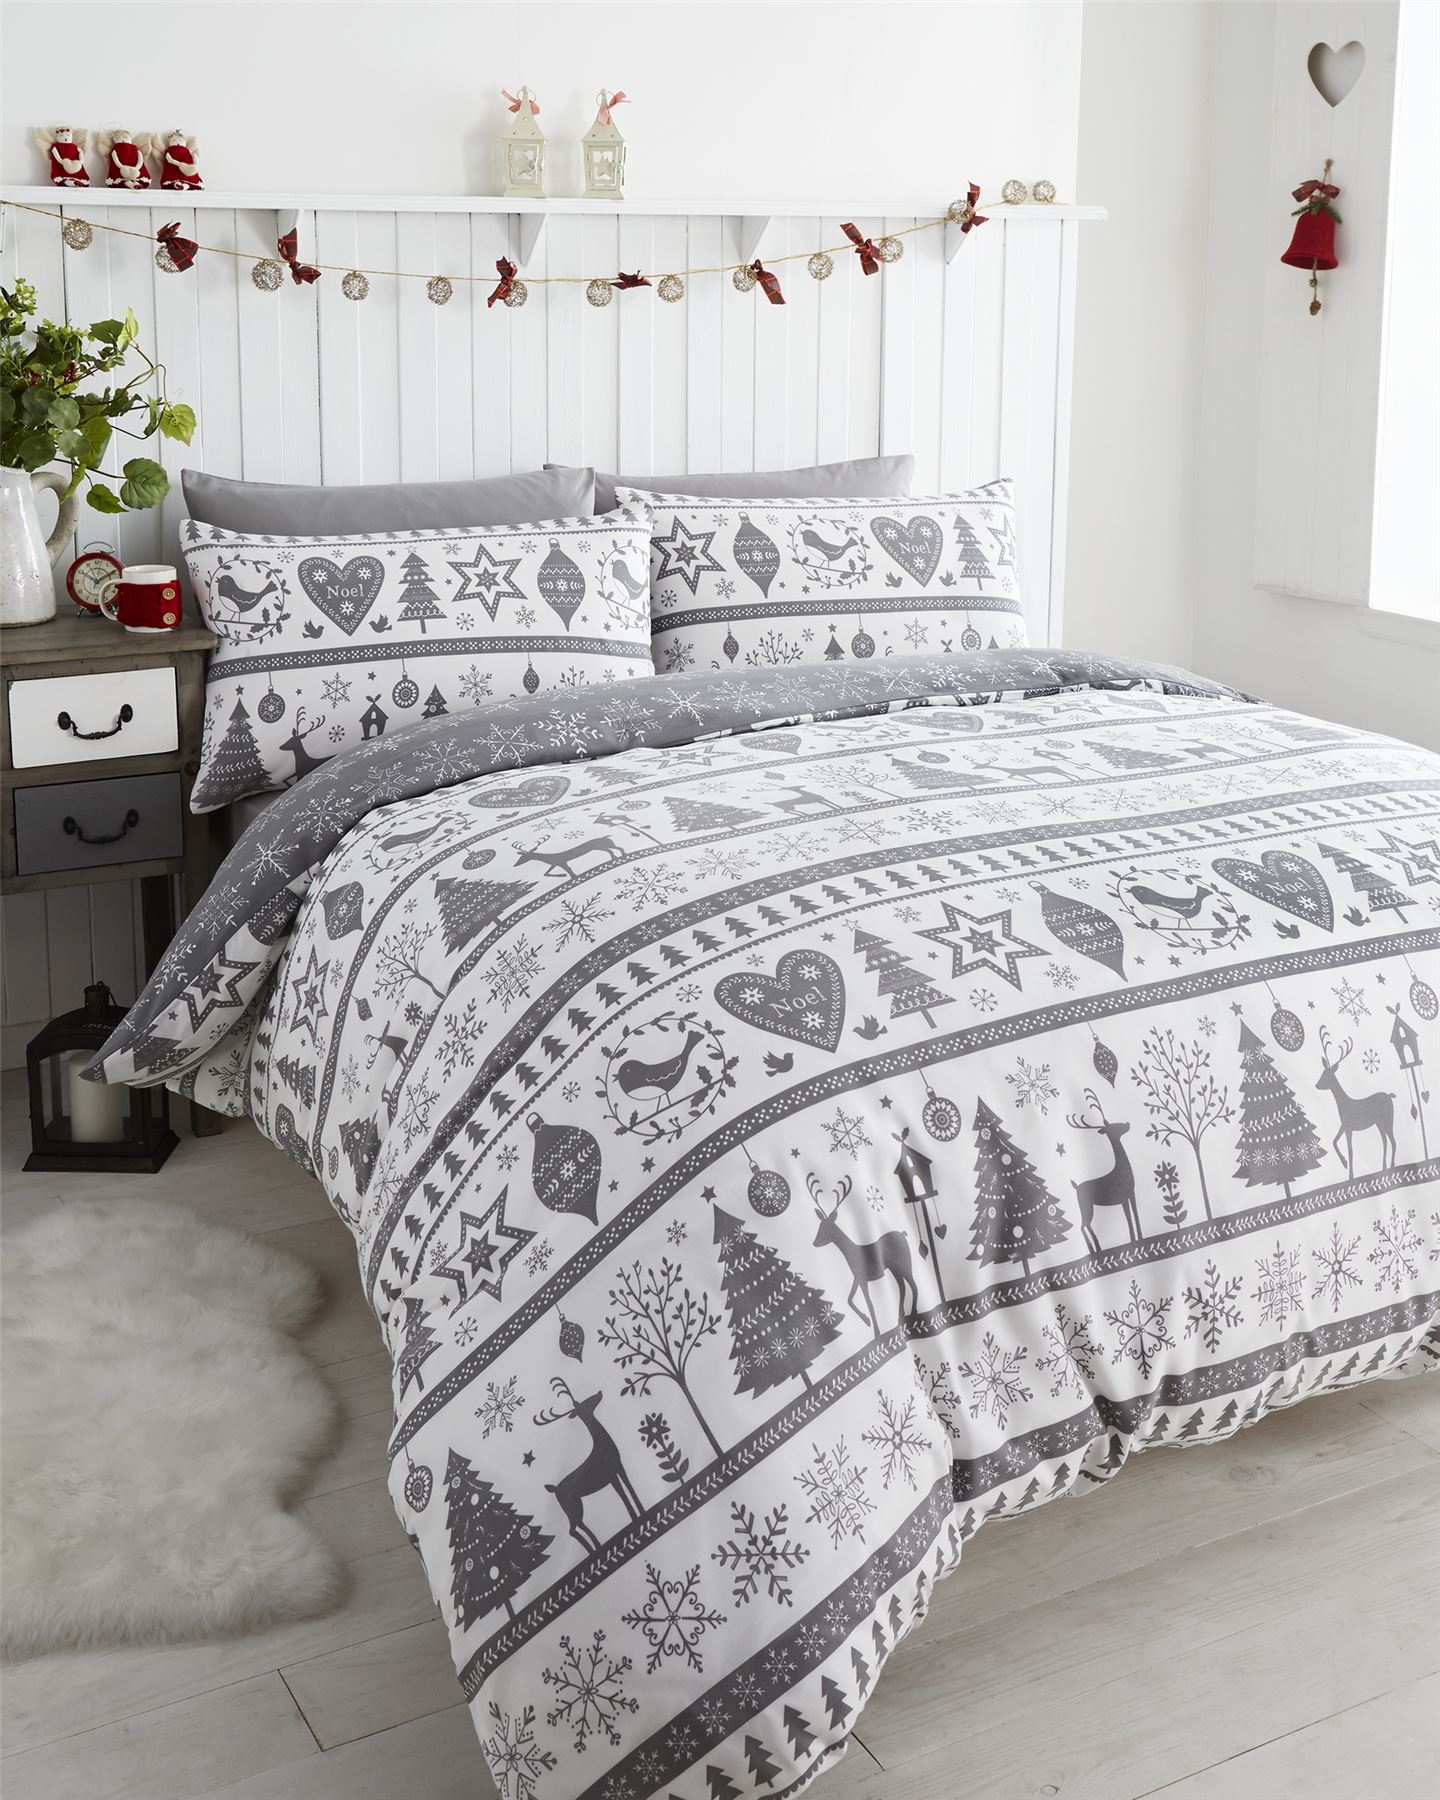 Christmas bedding comes in twin, full, queen, and king-size dimensions. However, it features special Christmas scenes, like Santa happily bringing gifts with his sleigh and loyal reindeer. Some bedding displays images from classic holiday movies, like